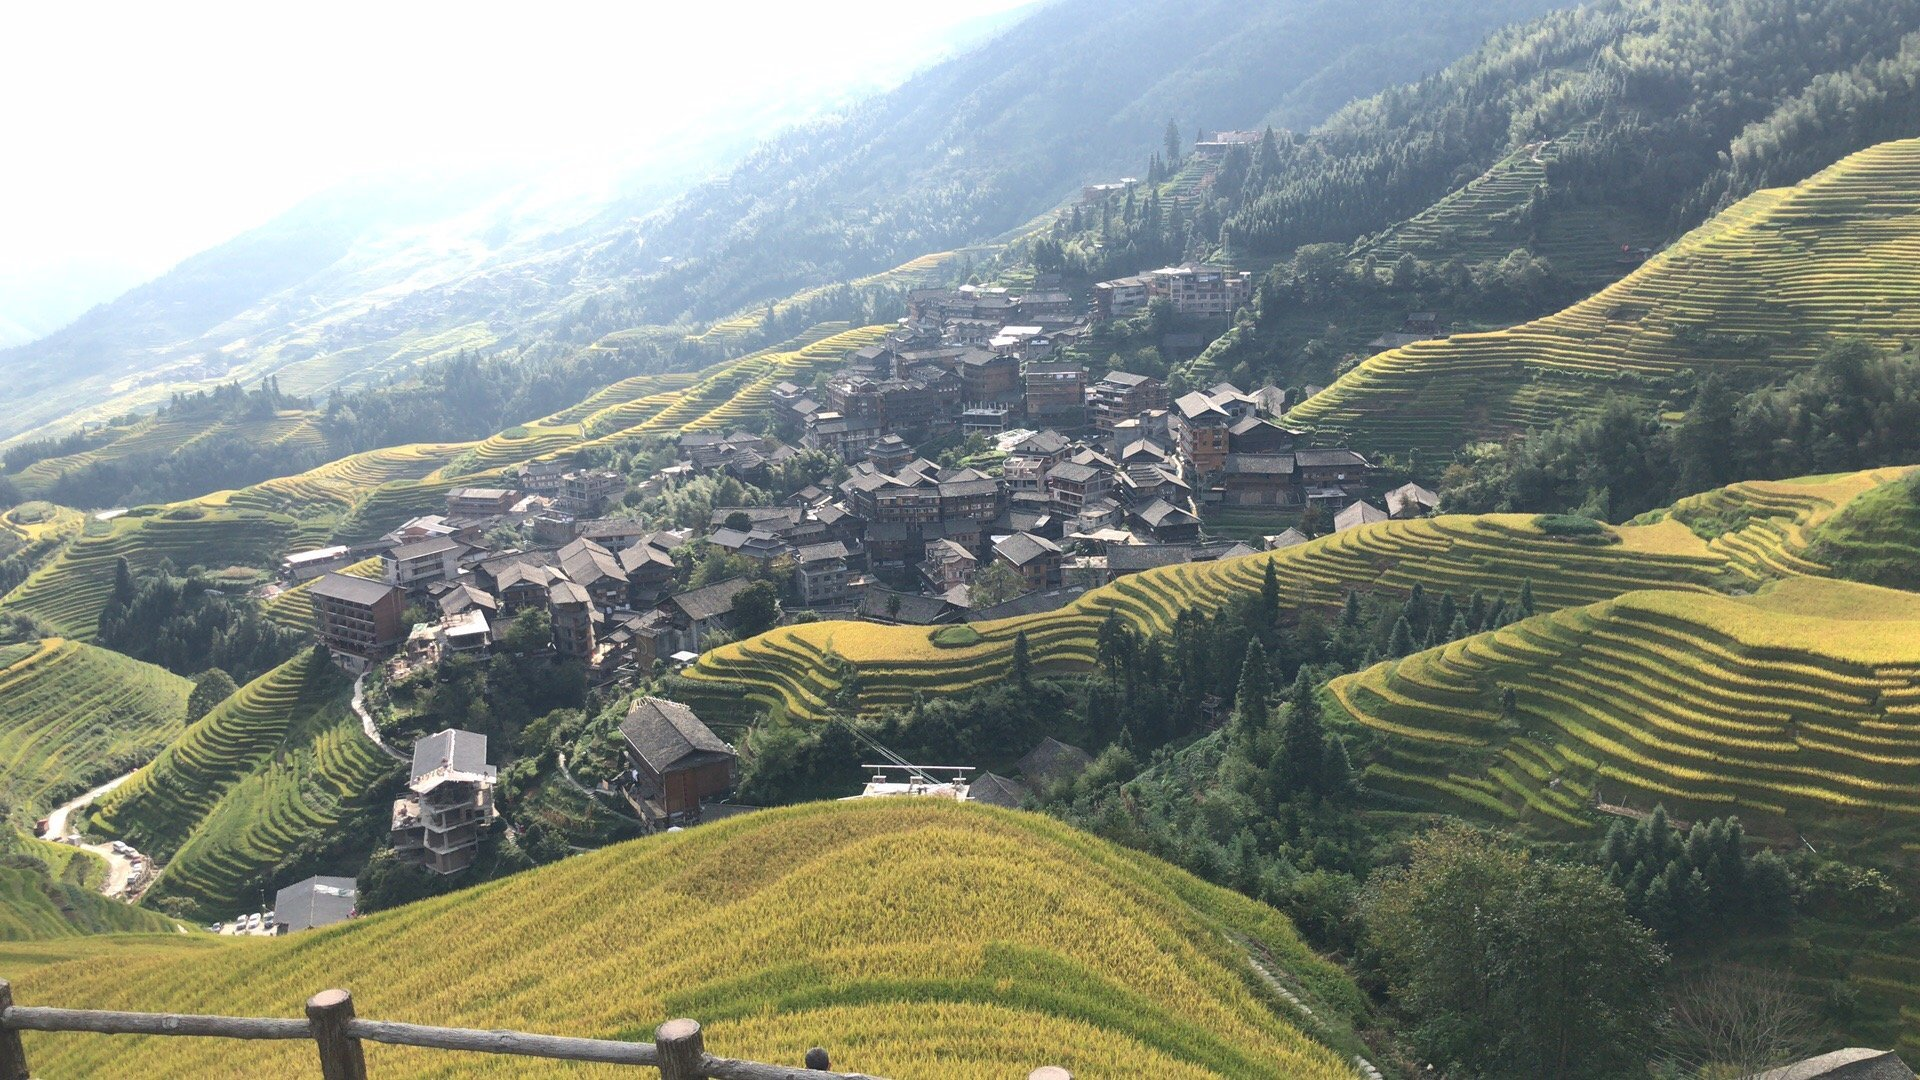 Longsheng – The Most Amazing Rice Terraces in China